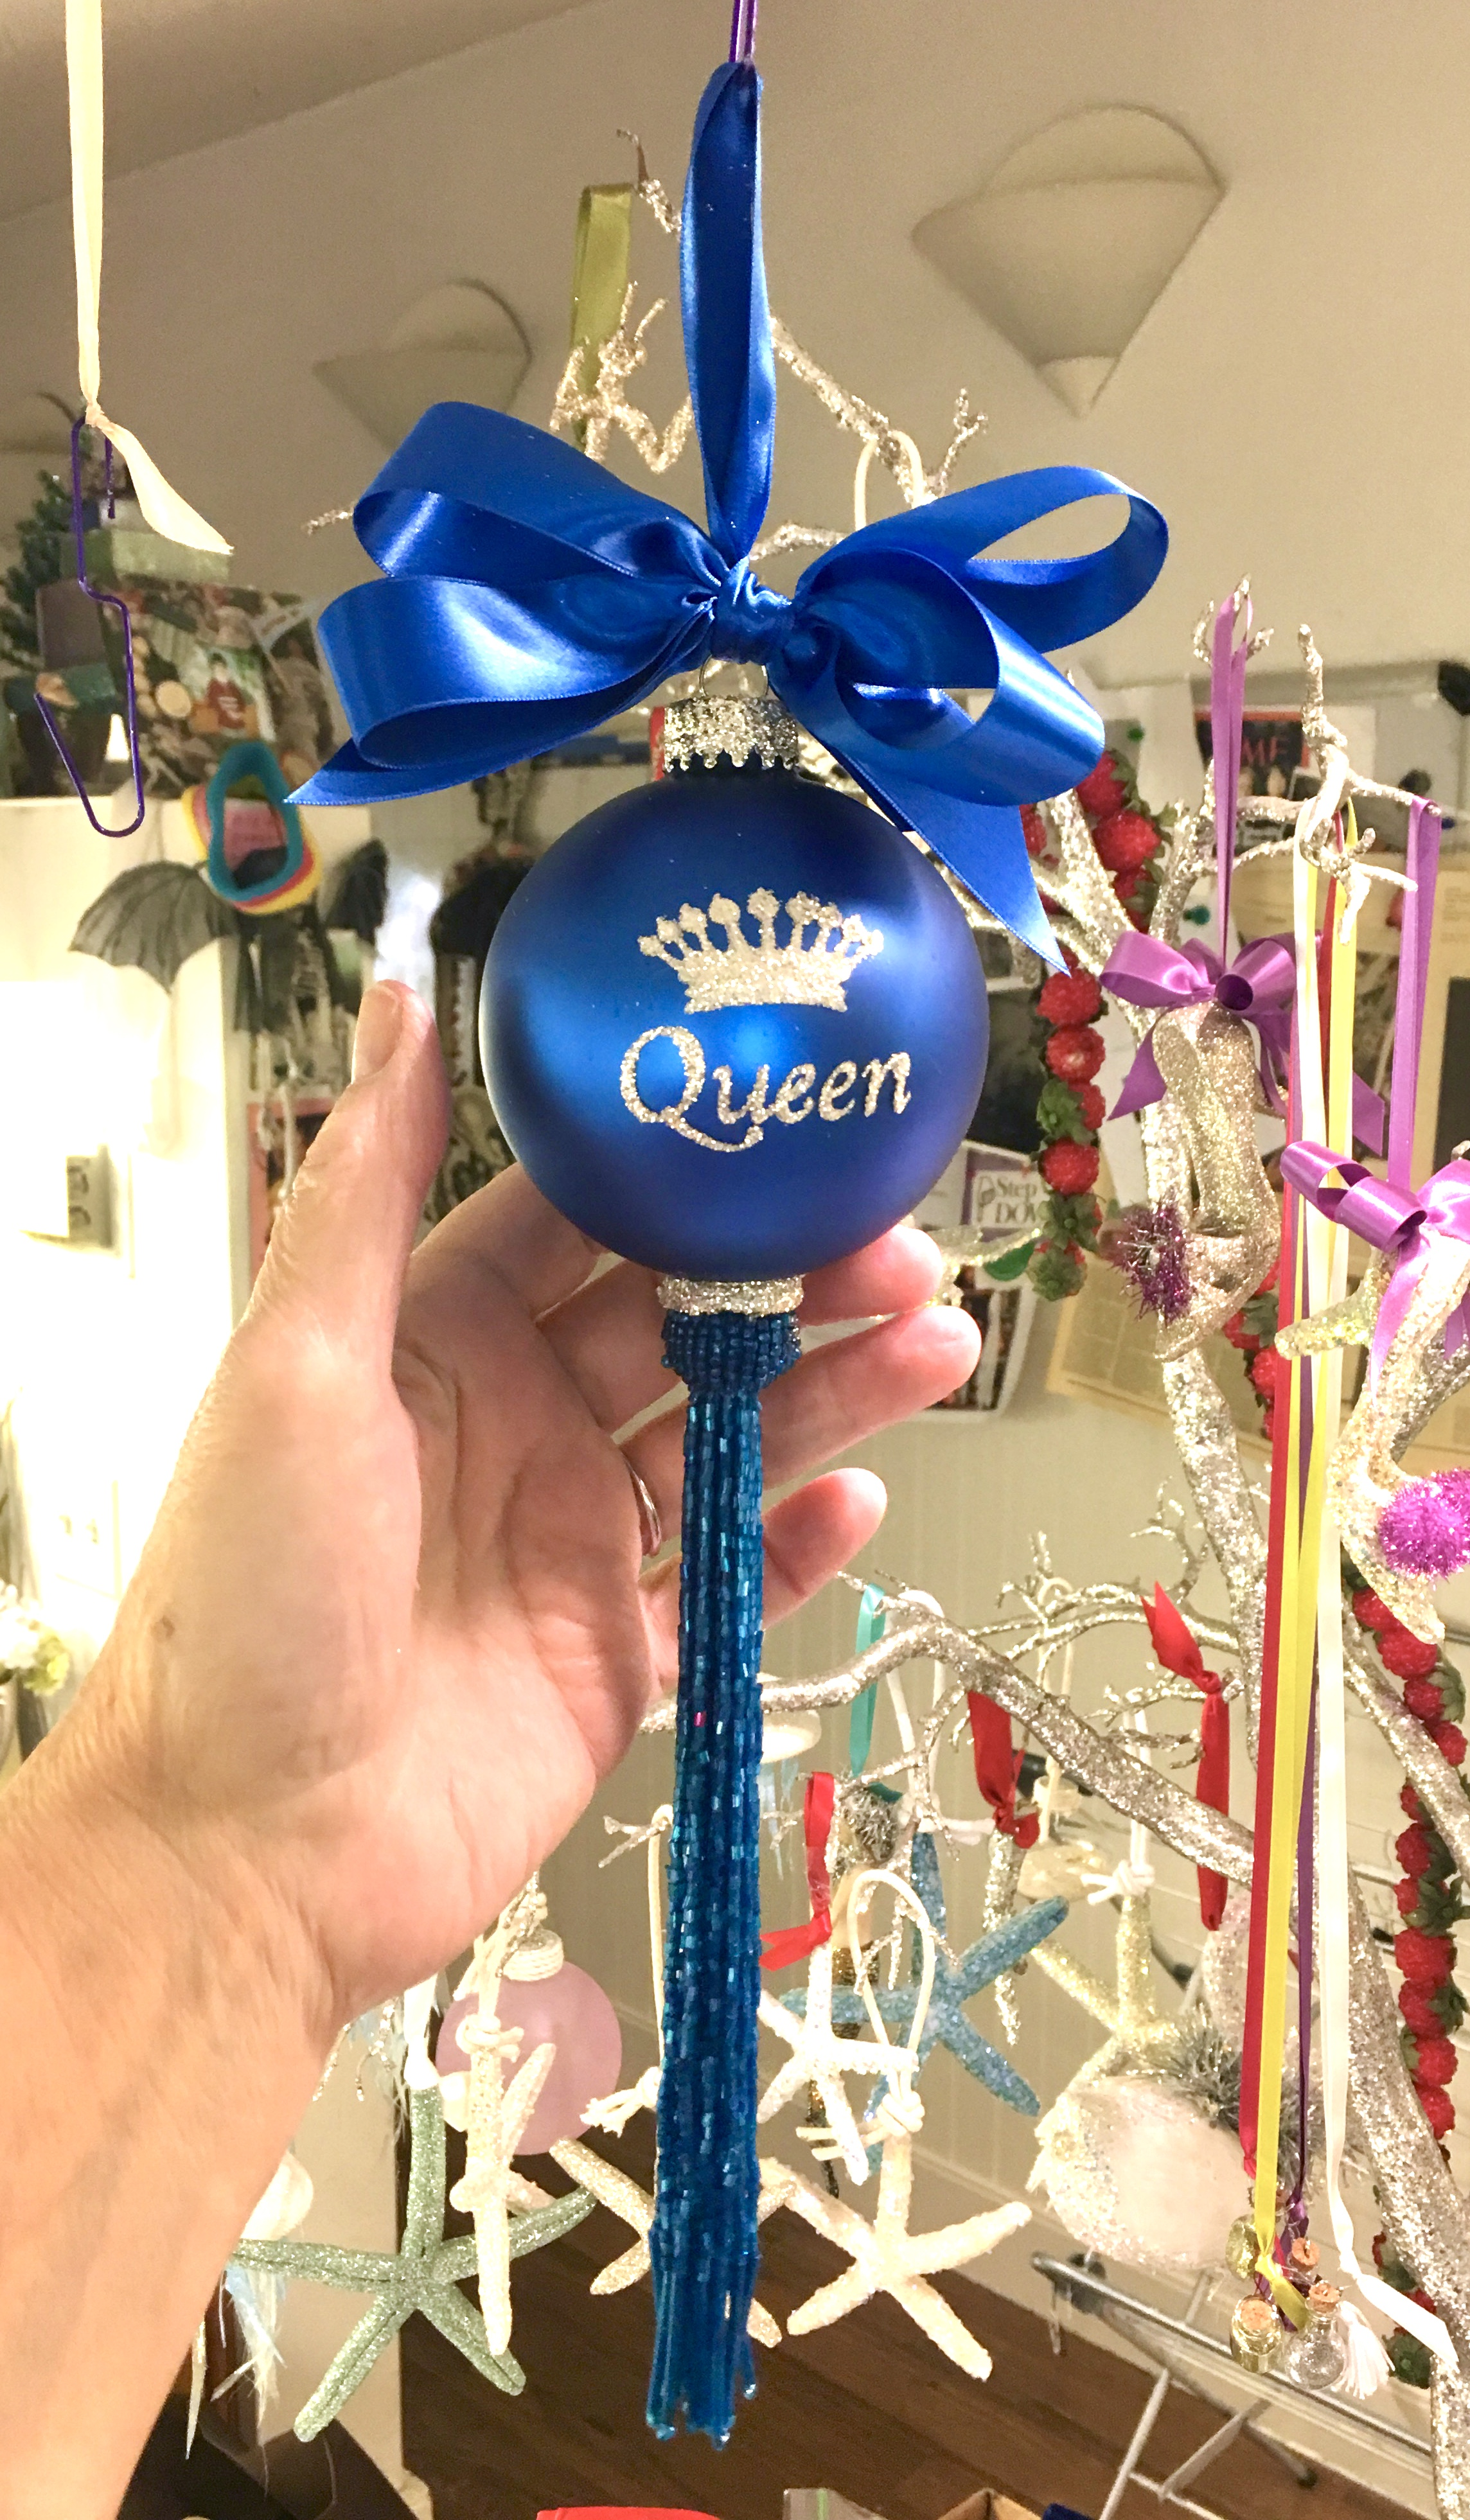 Queen Glass Ornament with tassel